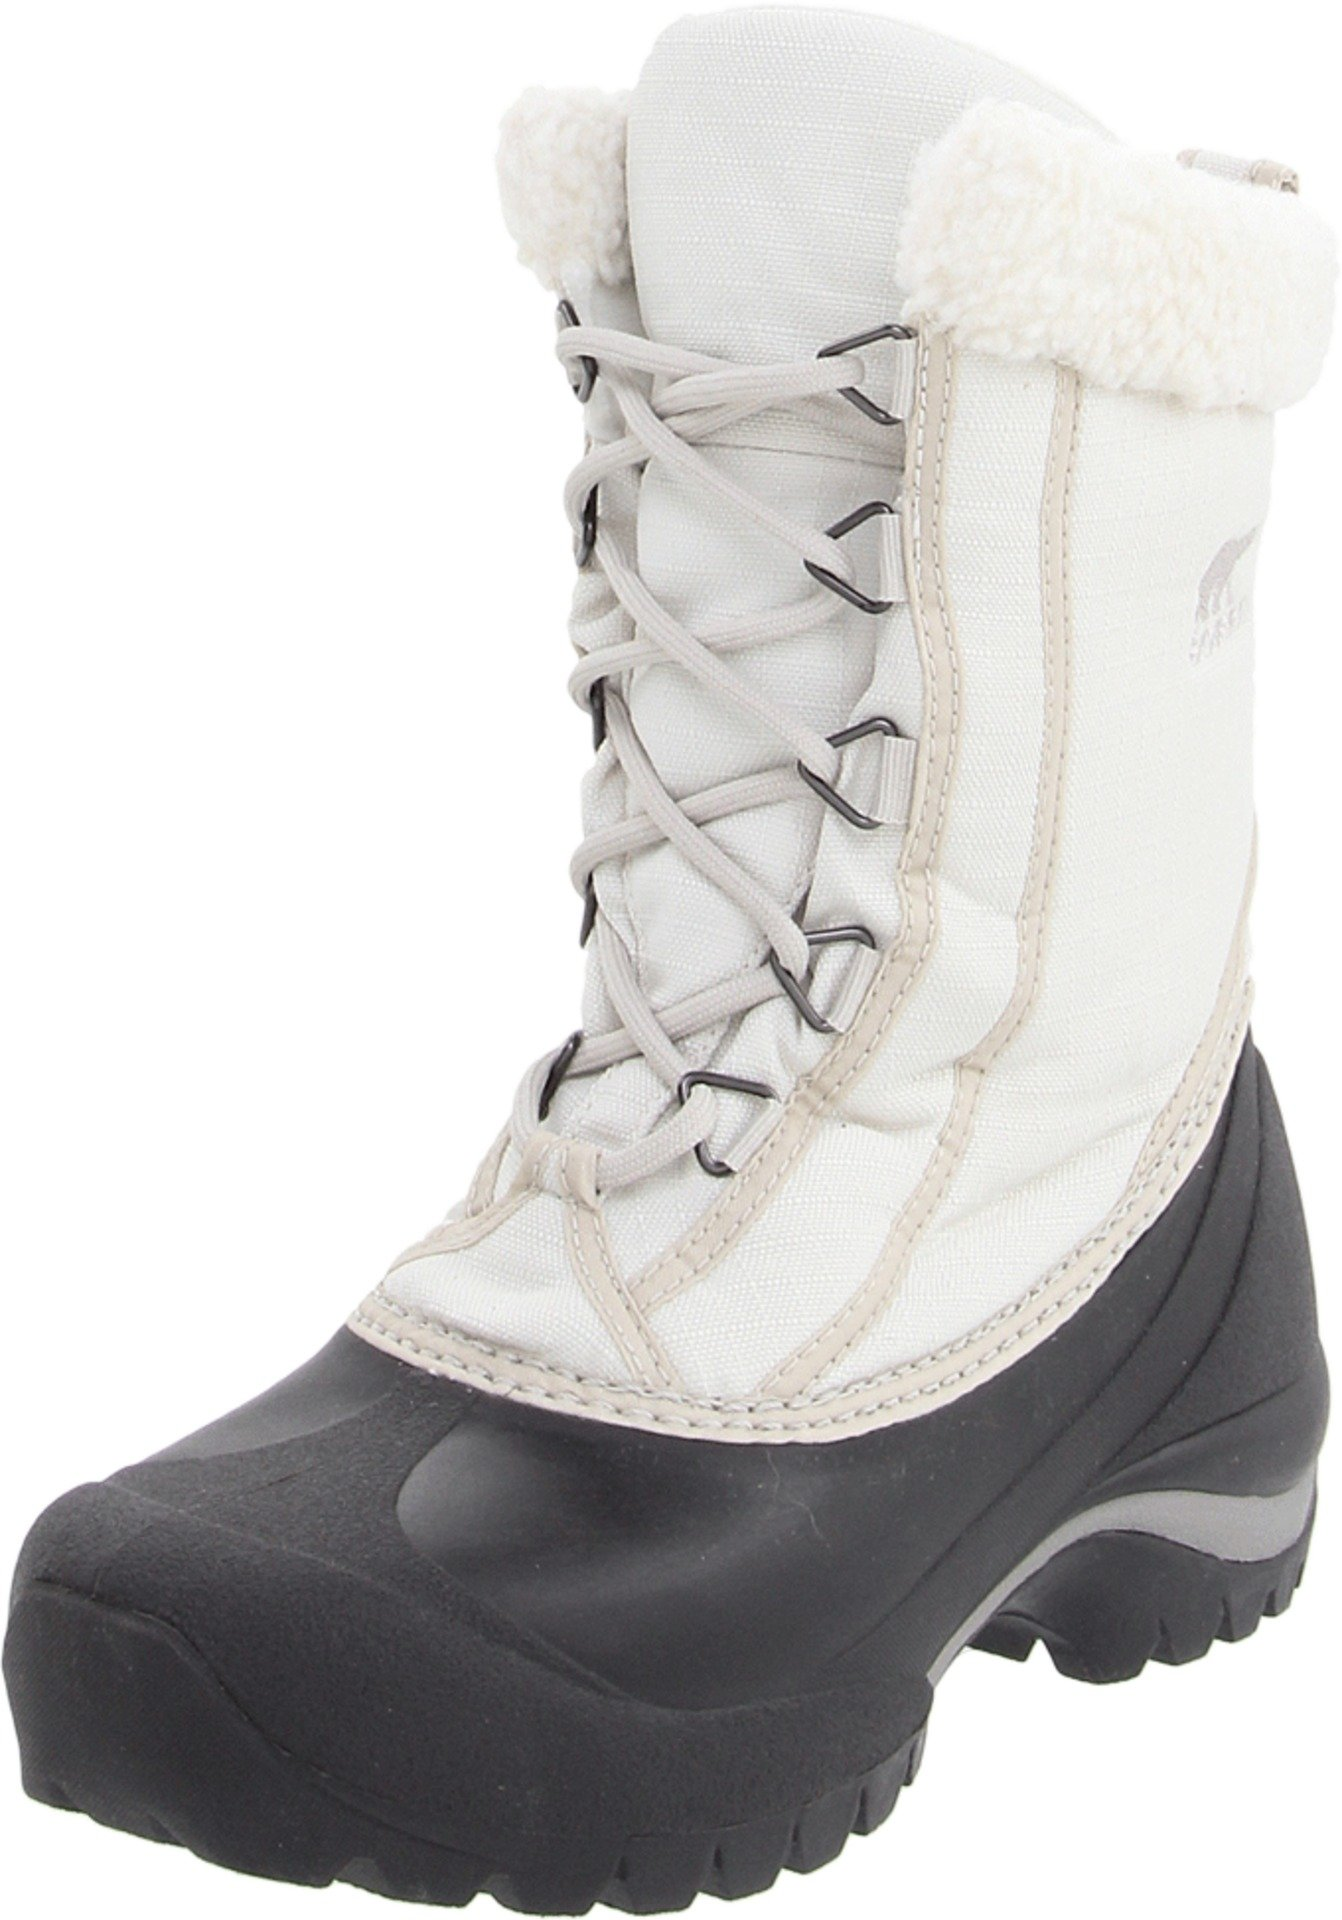 Sorel Women's Cumberland NL1436 Boot, Turtle Dove/Silver Lining, 8.5 M US